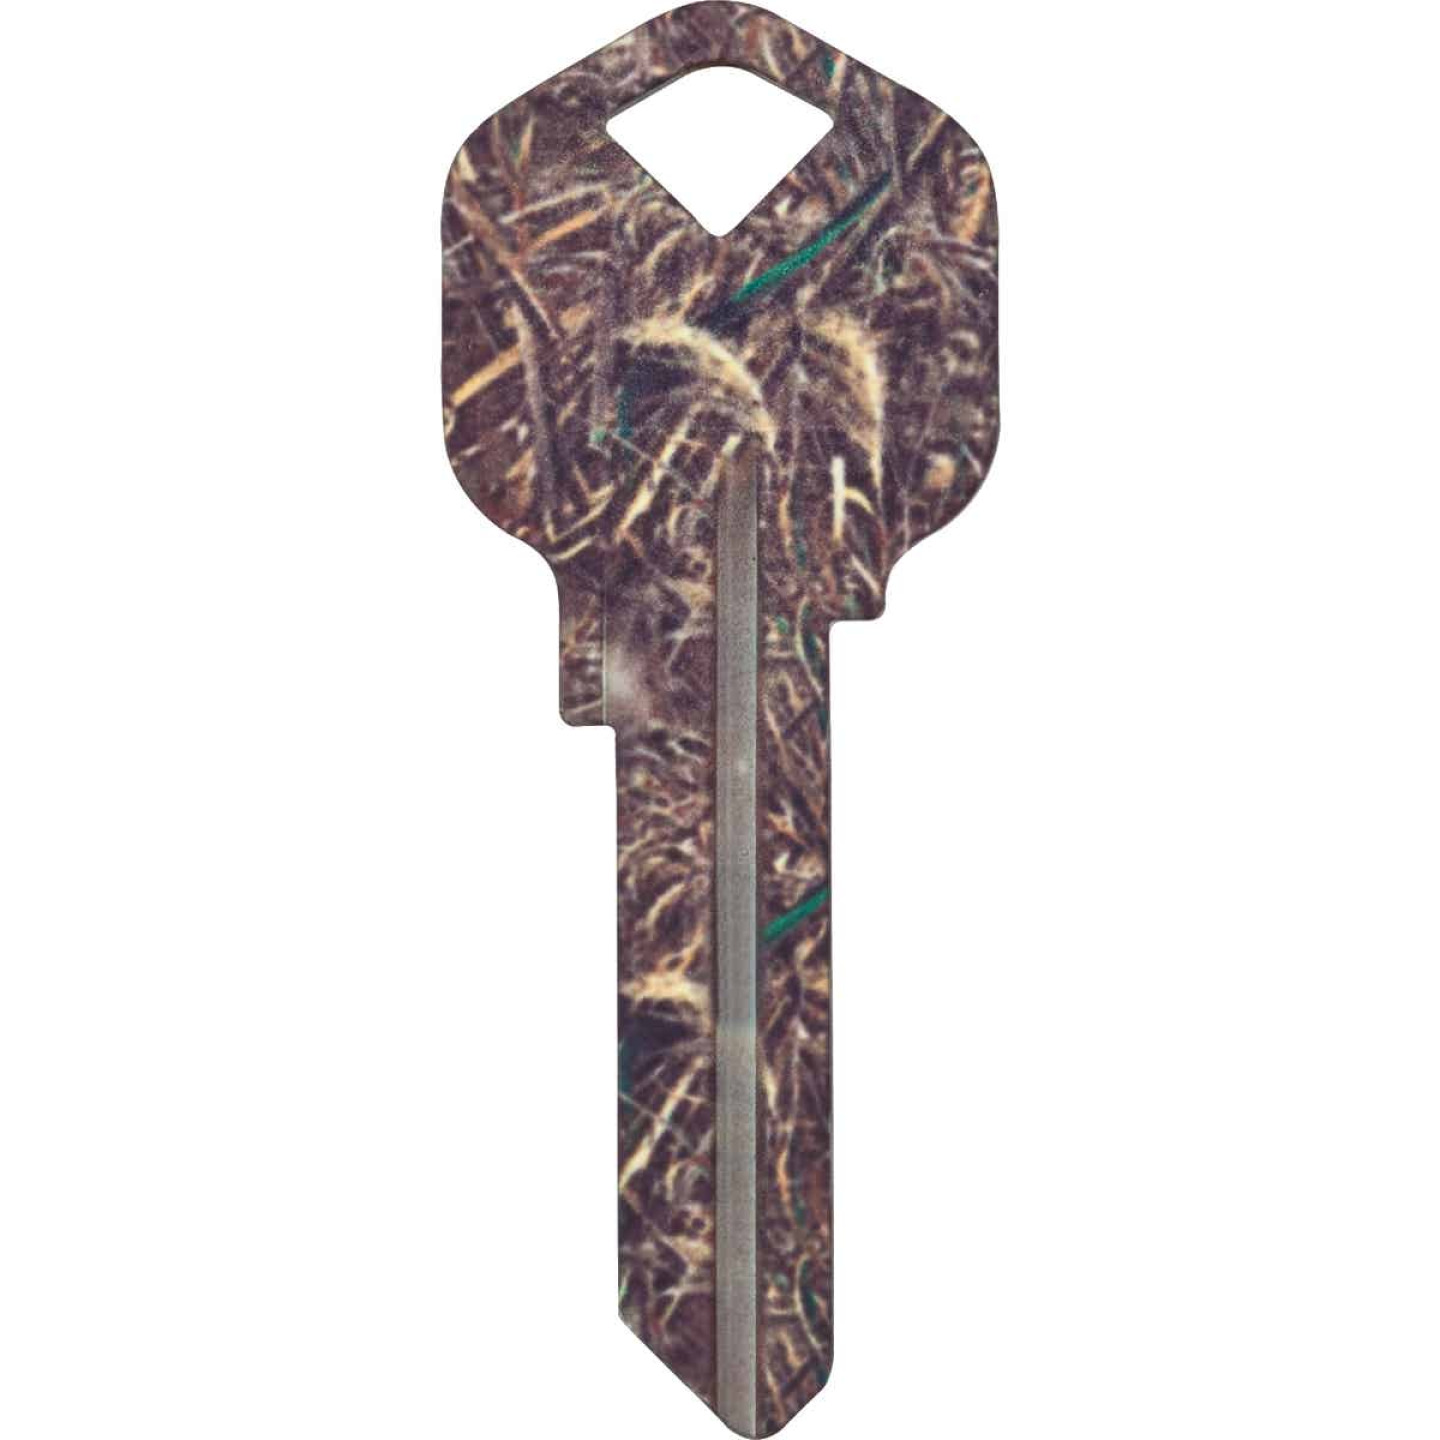 ILCO Kwikset Realtree Camo Design Decorative Key, KW1  Image 1